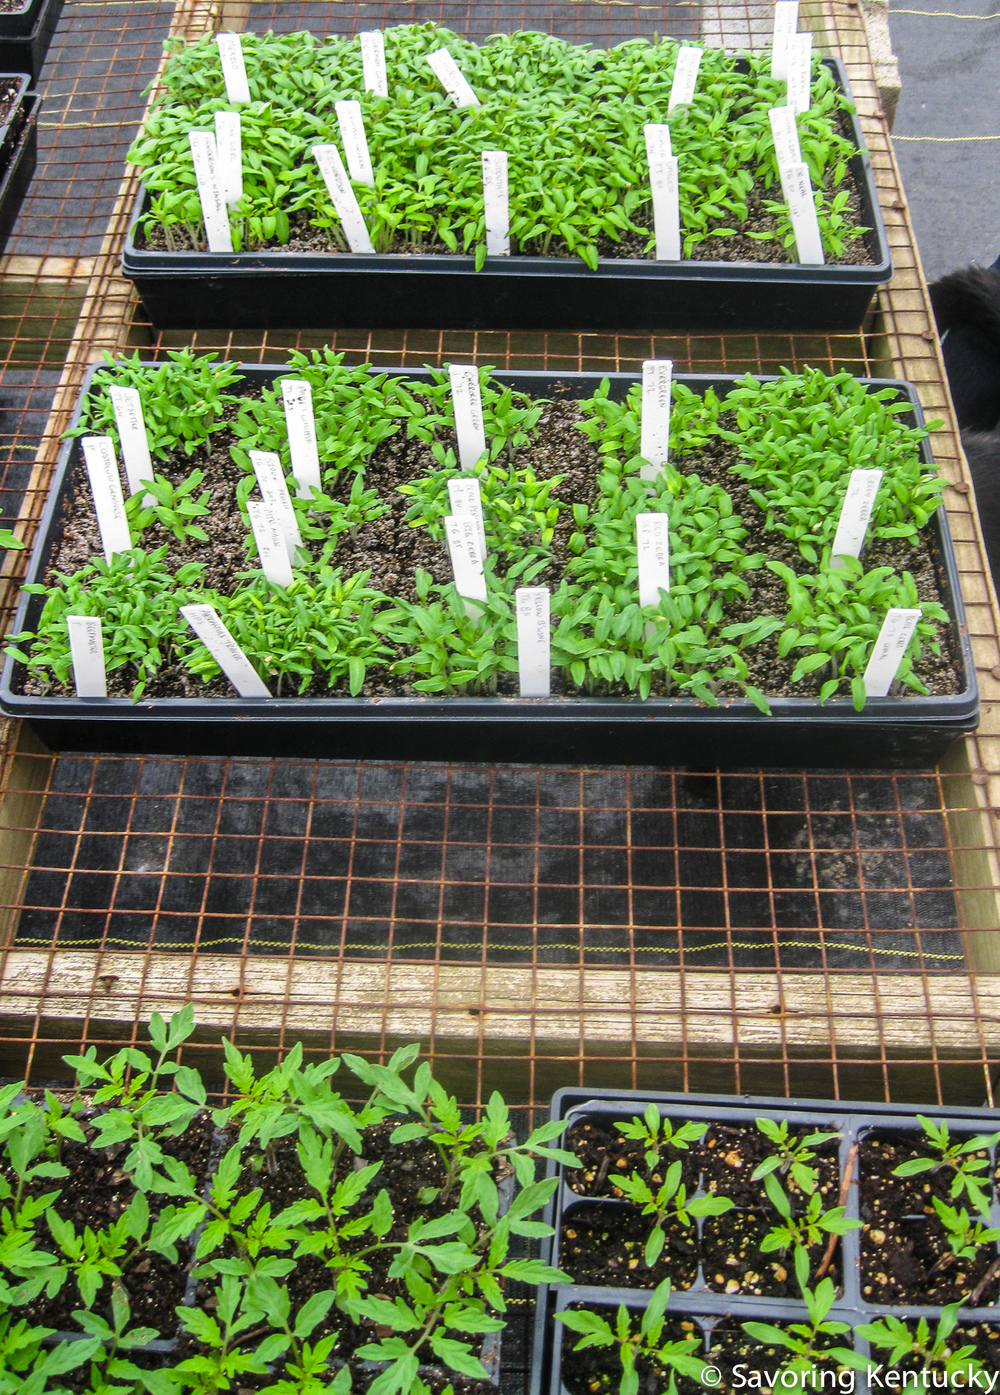 Seedlings at Henkle's Herbs & Heirlooms, March, 2014